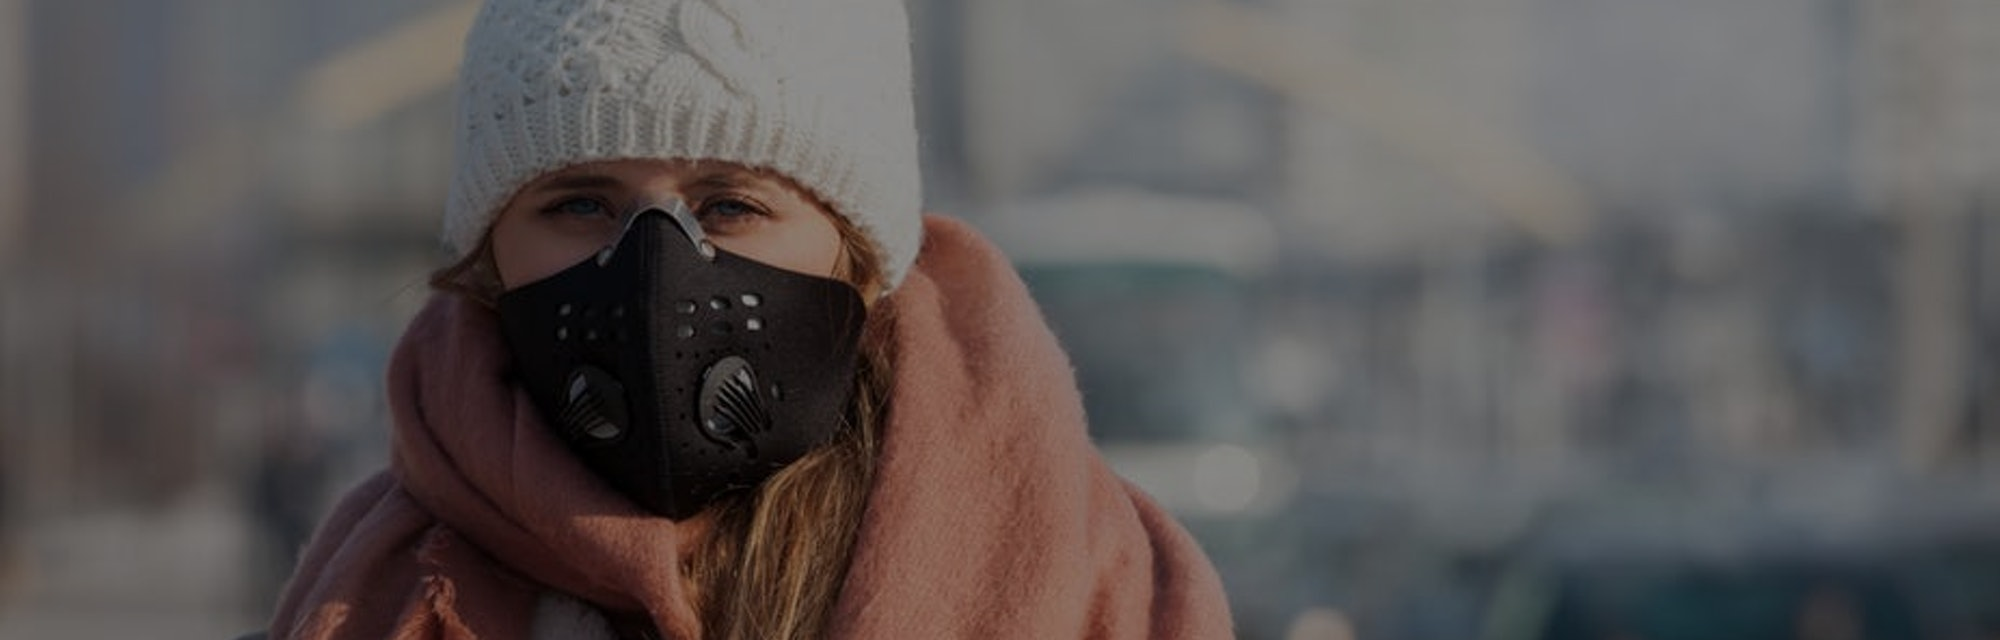 A mask rated N95 or N99 will best protect against pollution particles.